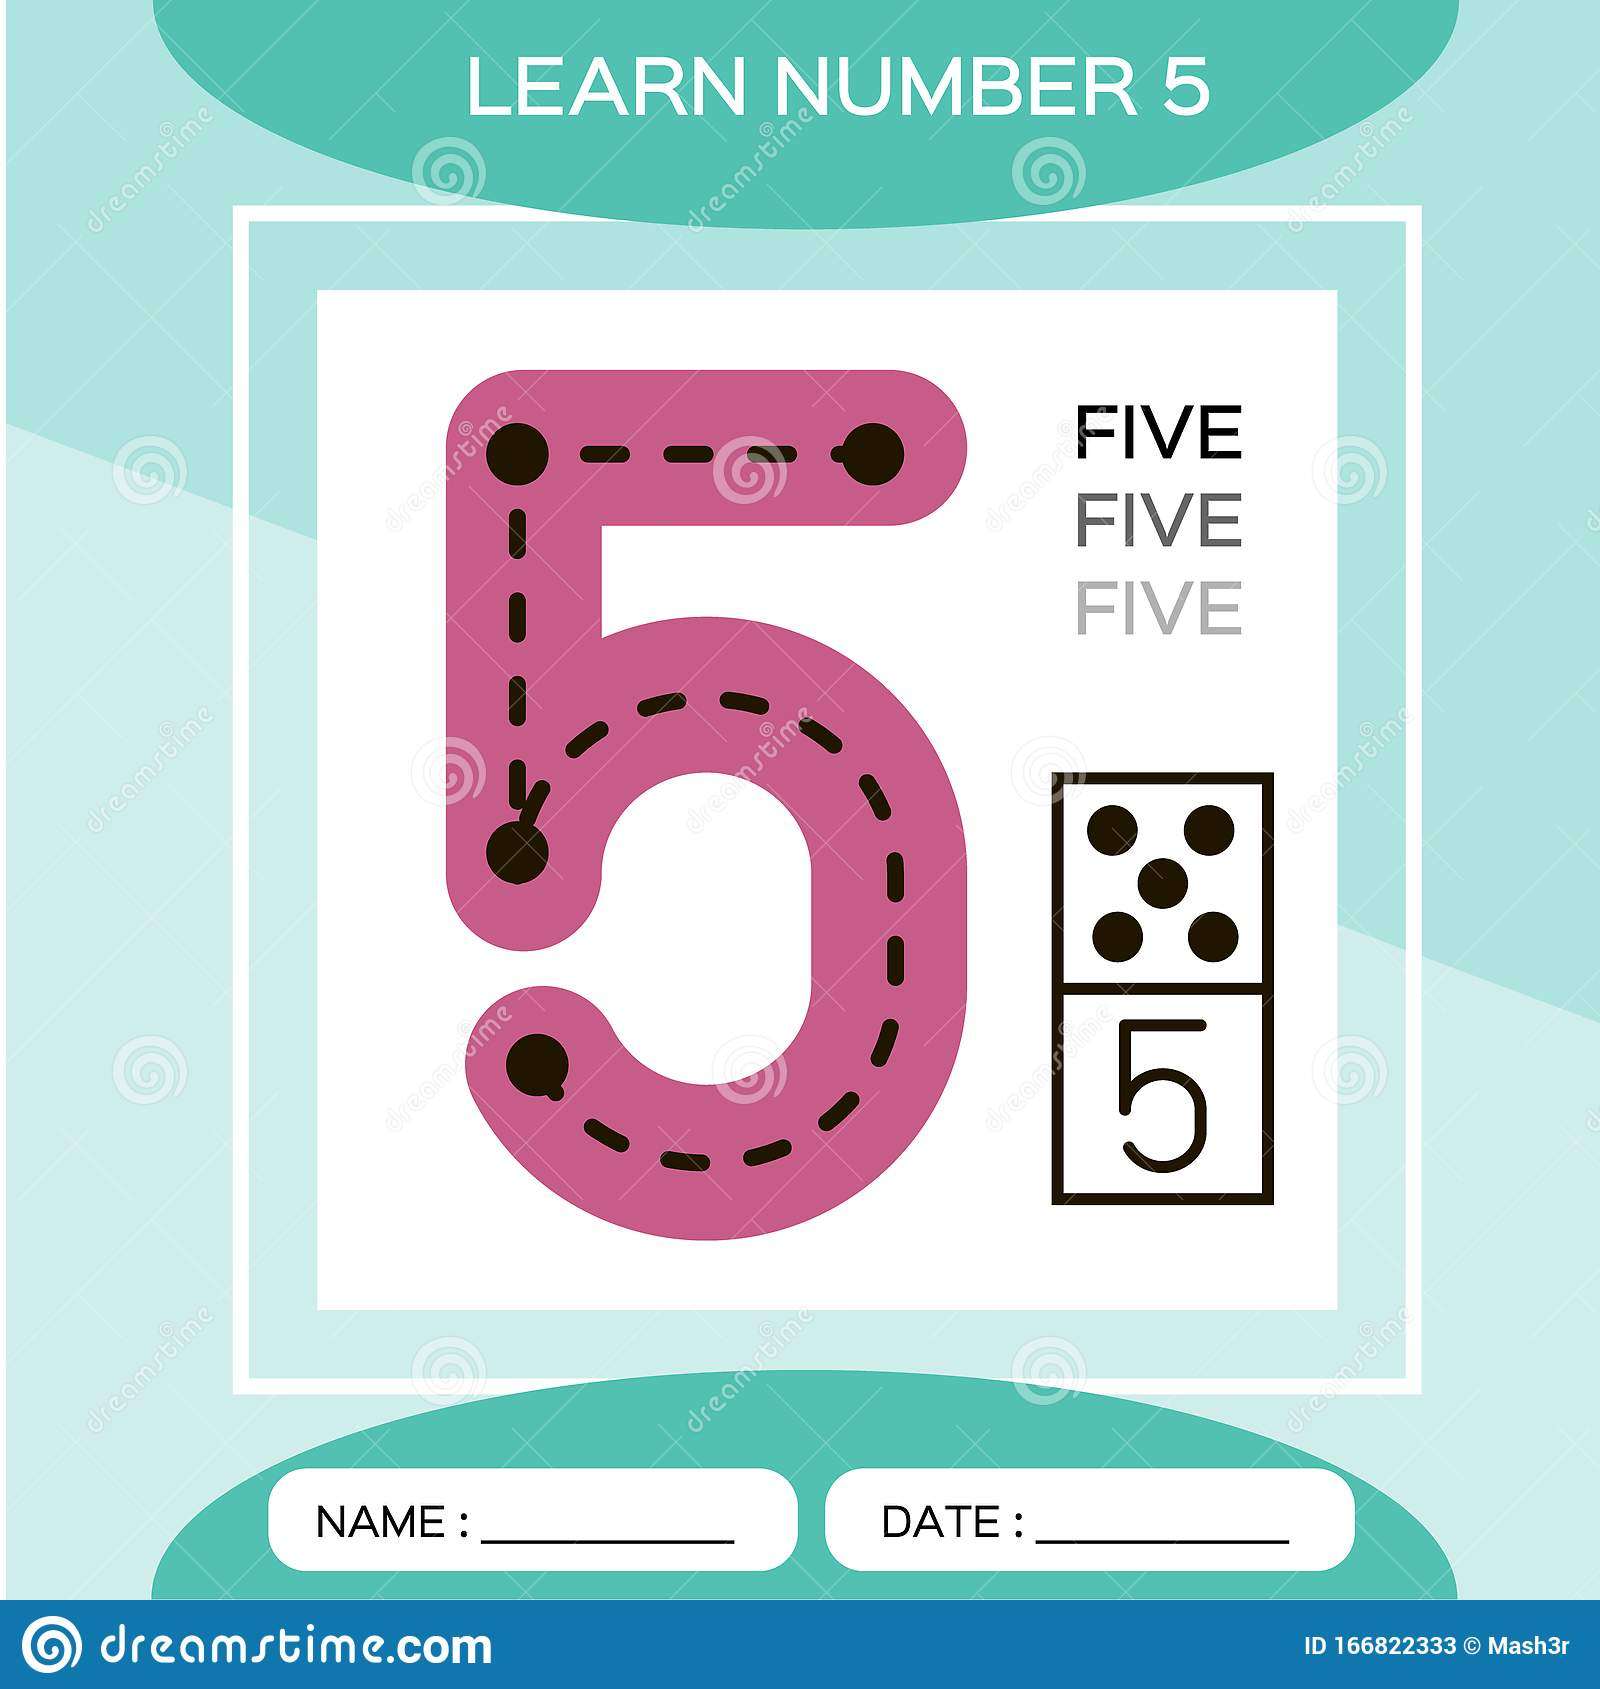 Learn Number 5 Five Children Educational Game Kids